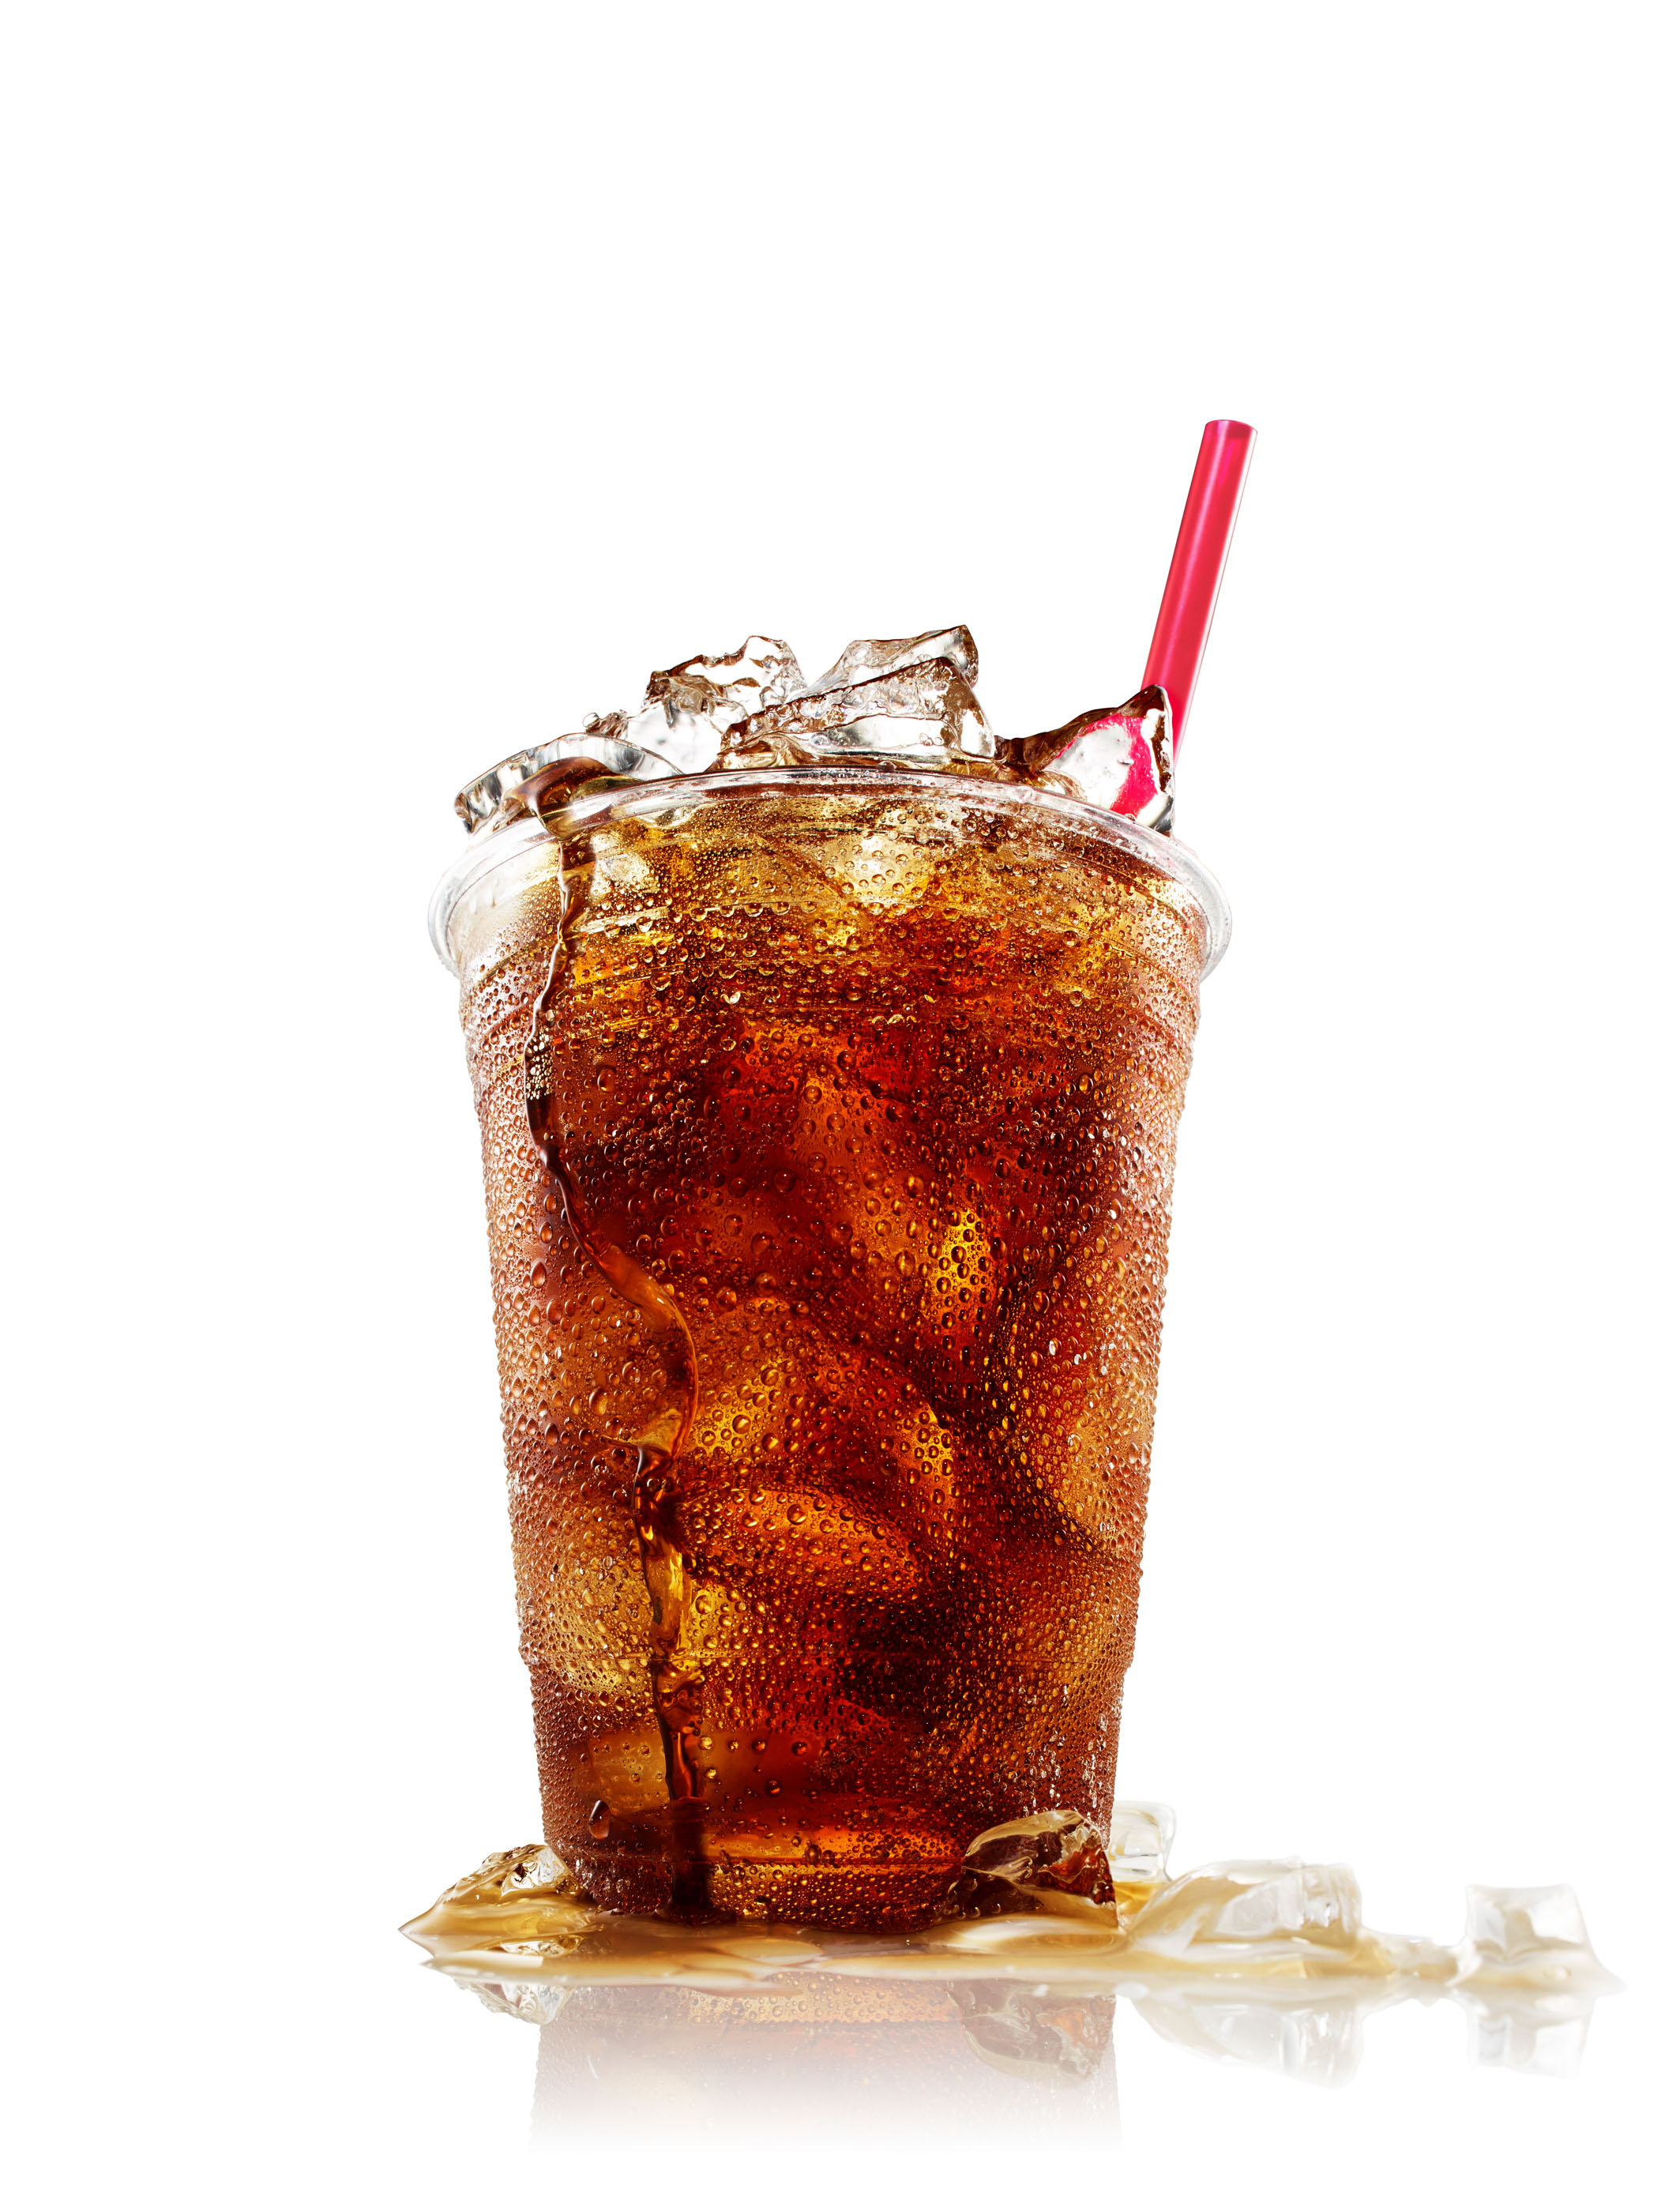 Robyn Valarik San Francisco Based Food & Drink Stylist - soda, ice, drip, sweaty, refreshing, drink, thirsty, straw, condensation, coke, beverage, food-photography